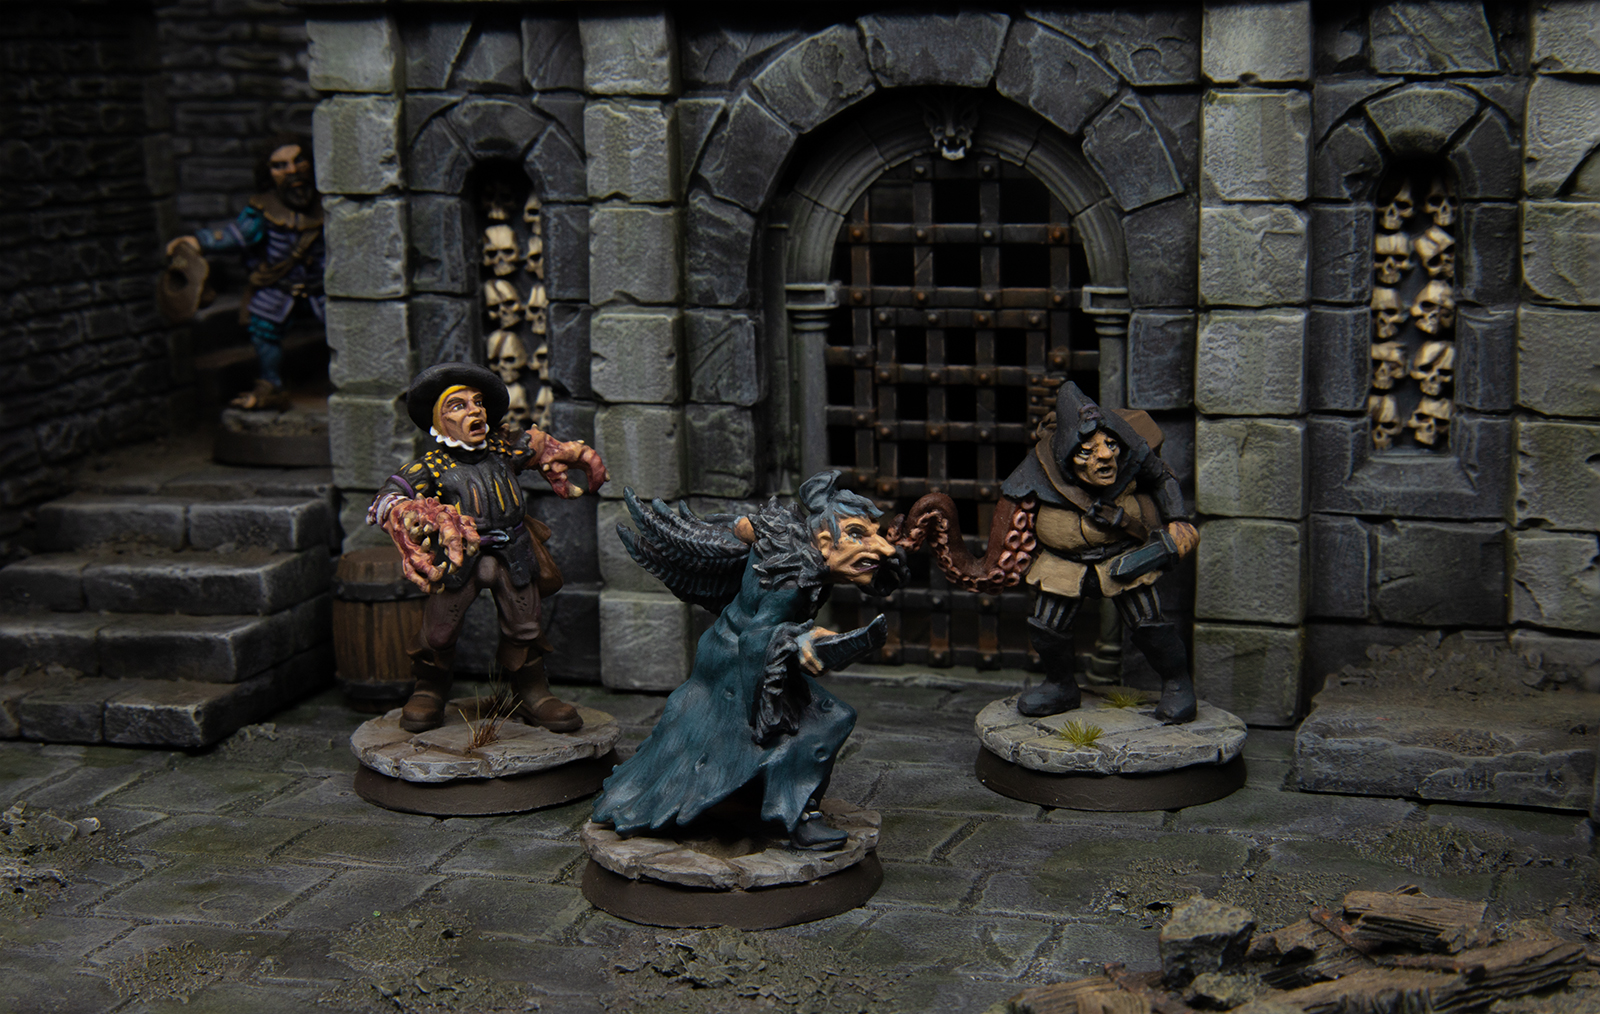 Mutants In The Sewer - King Games